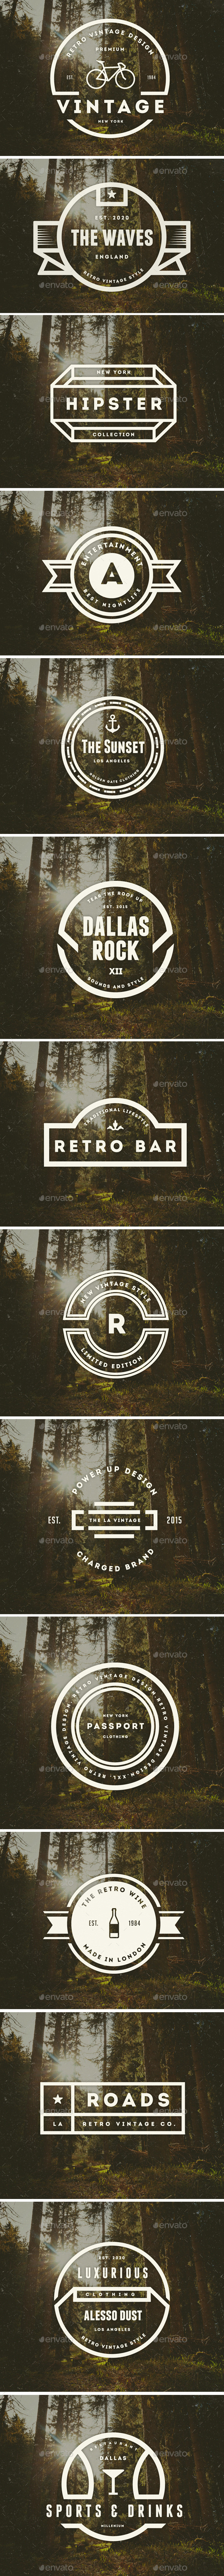 GraphicRiver 14 Vintage Logos Labels & Badges 9298022